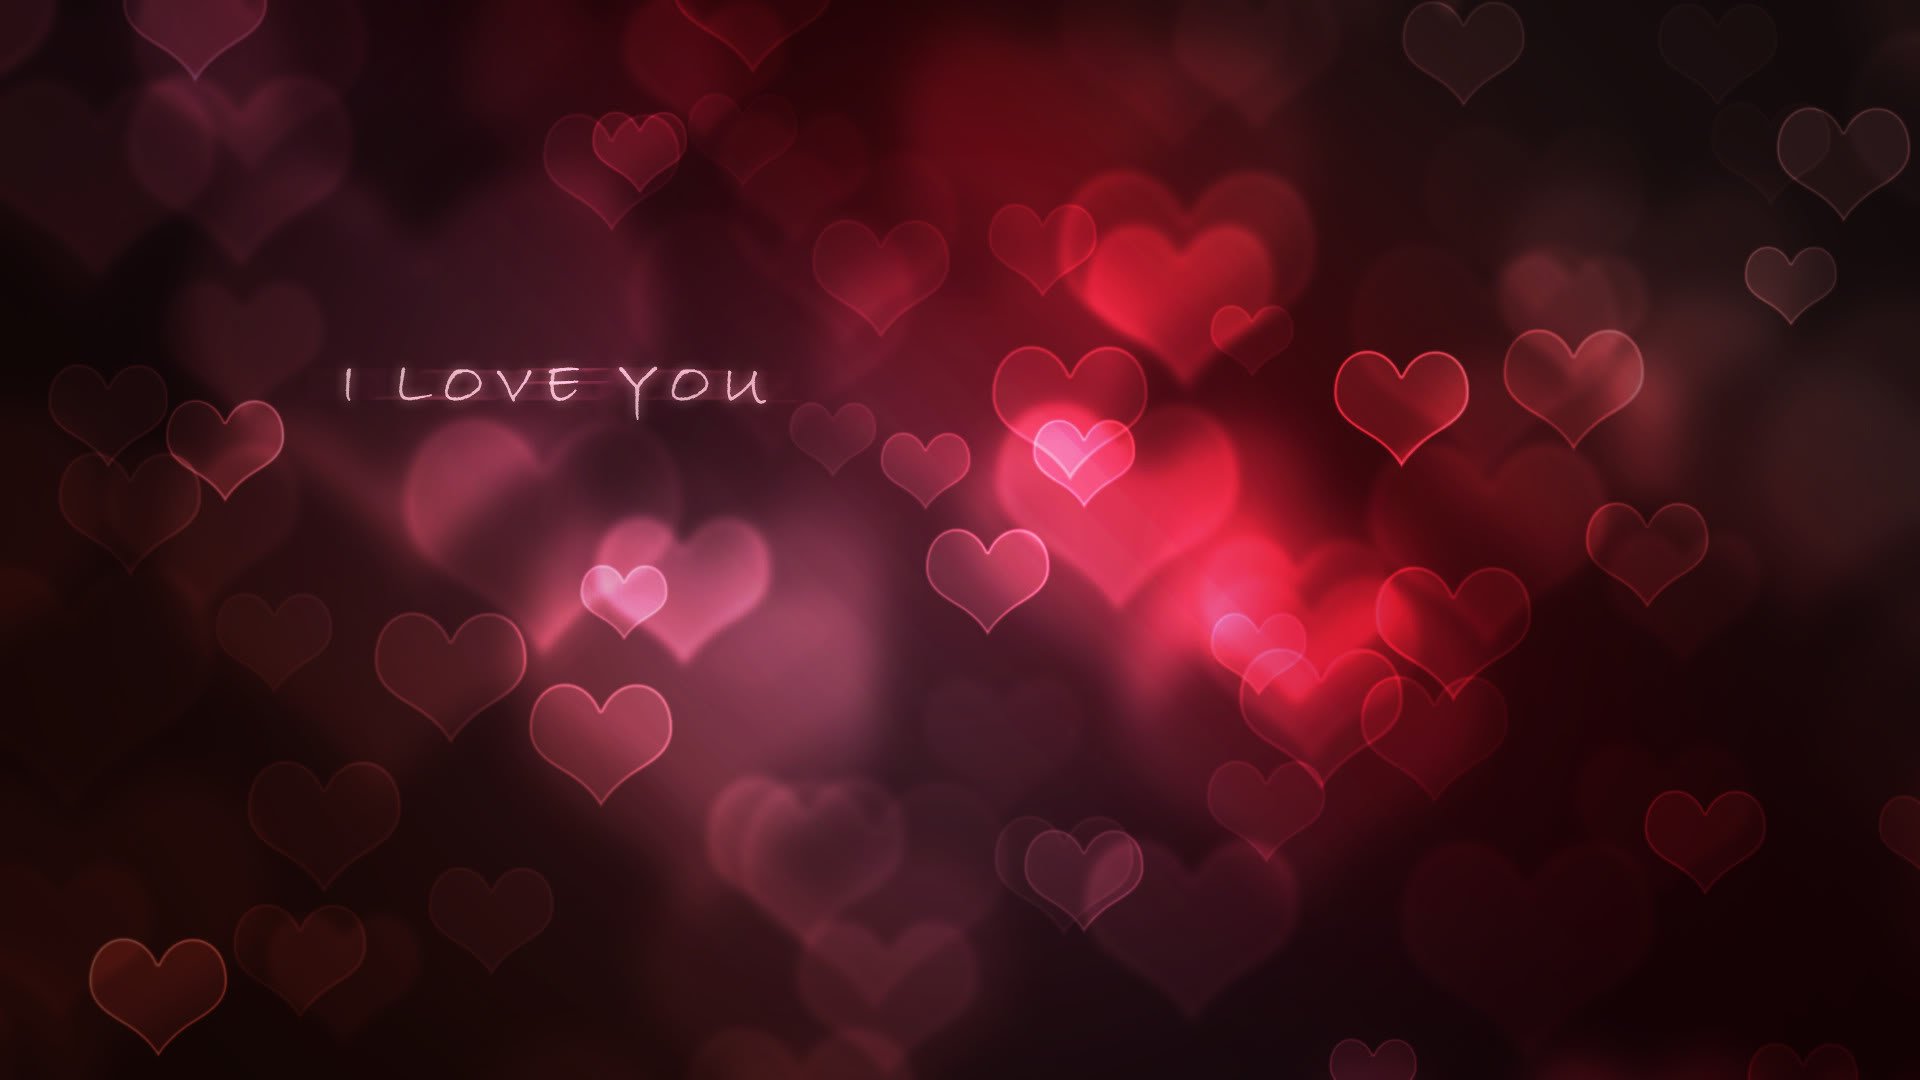 Love Wallpaper Photo Gallery : 25+ Sentimental I Love You Pictures PicsHunger